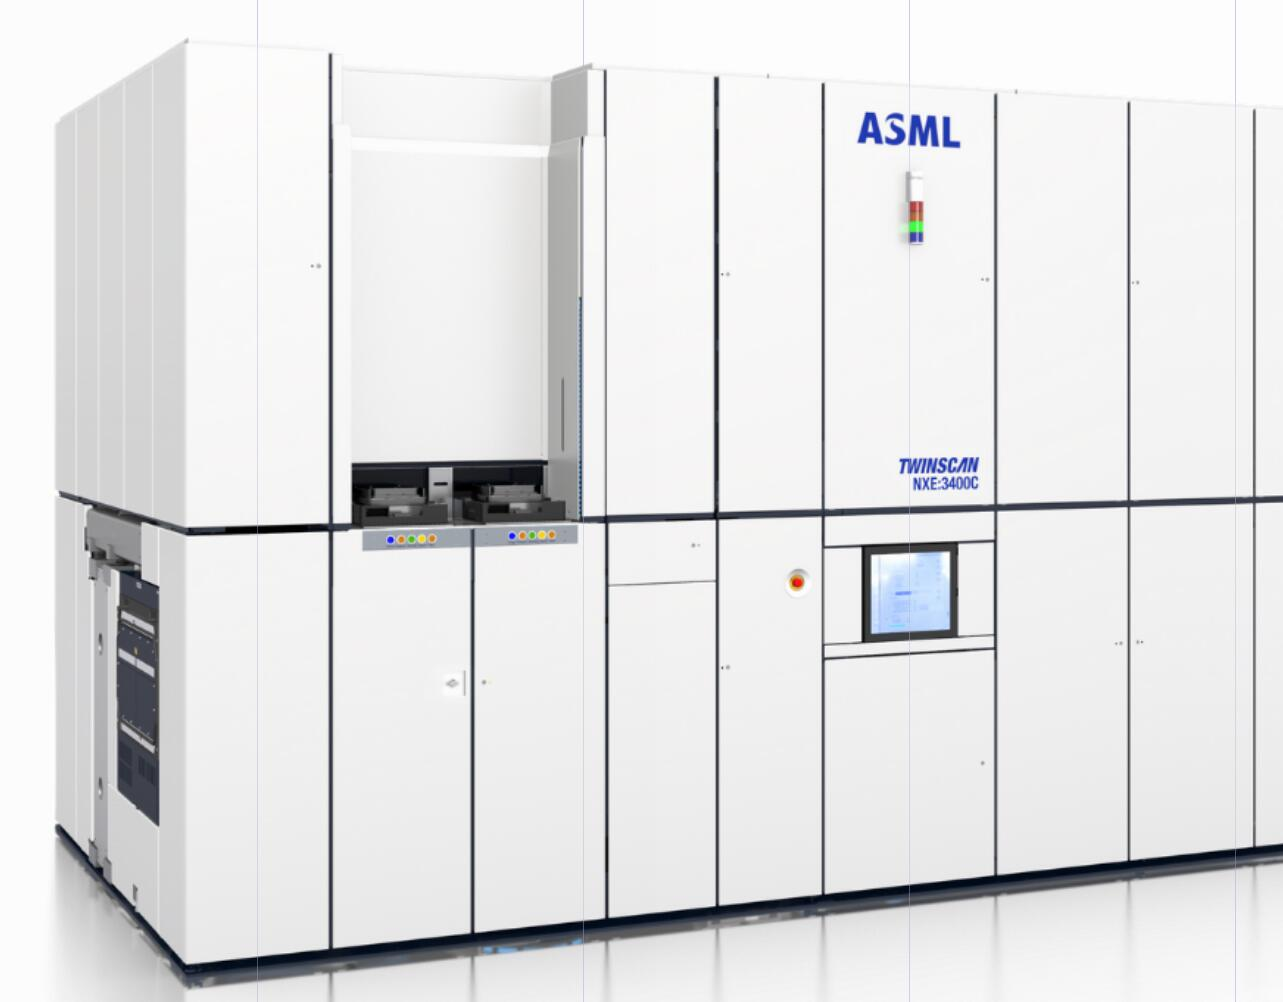 SMIC said to have access to almost all types of ASML lithography except EUV lithography-CnTechPost